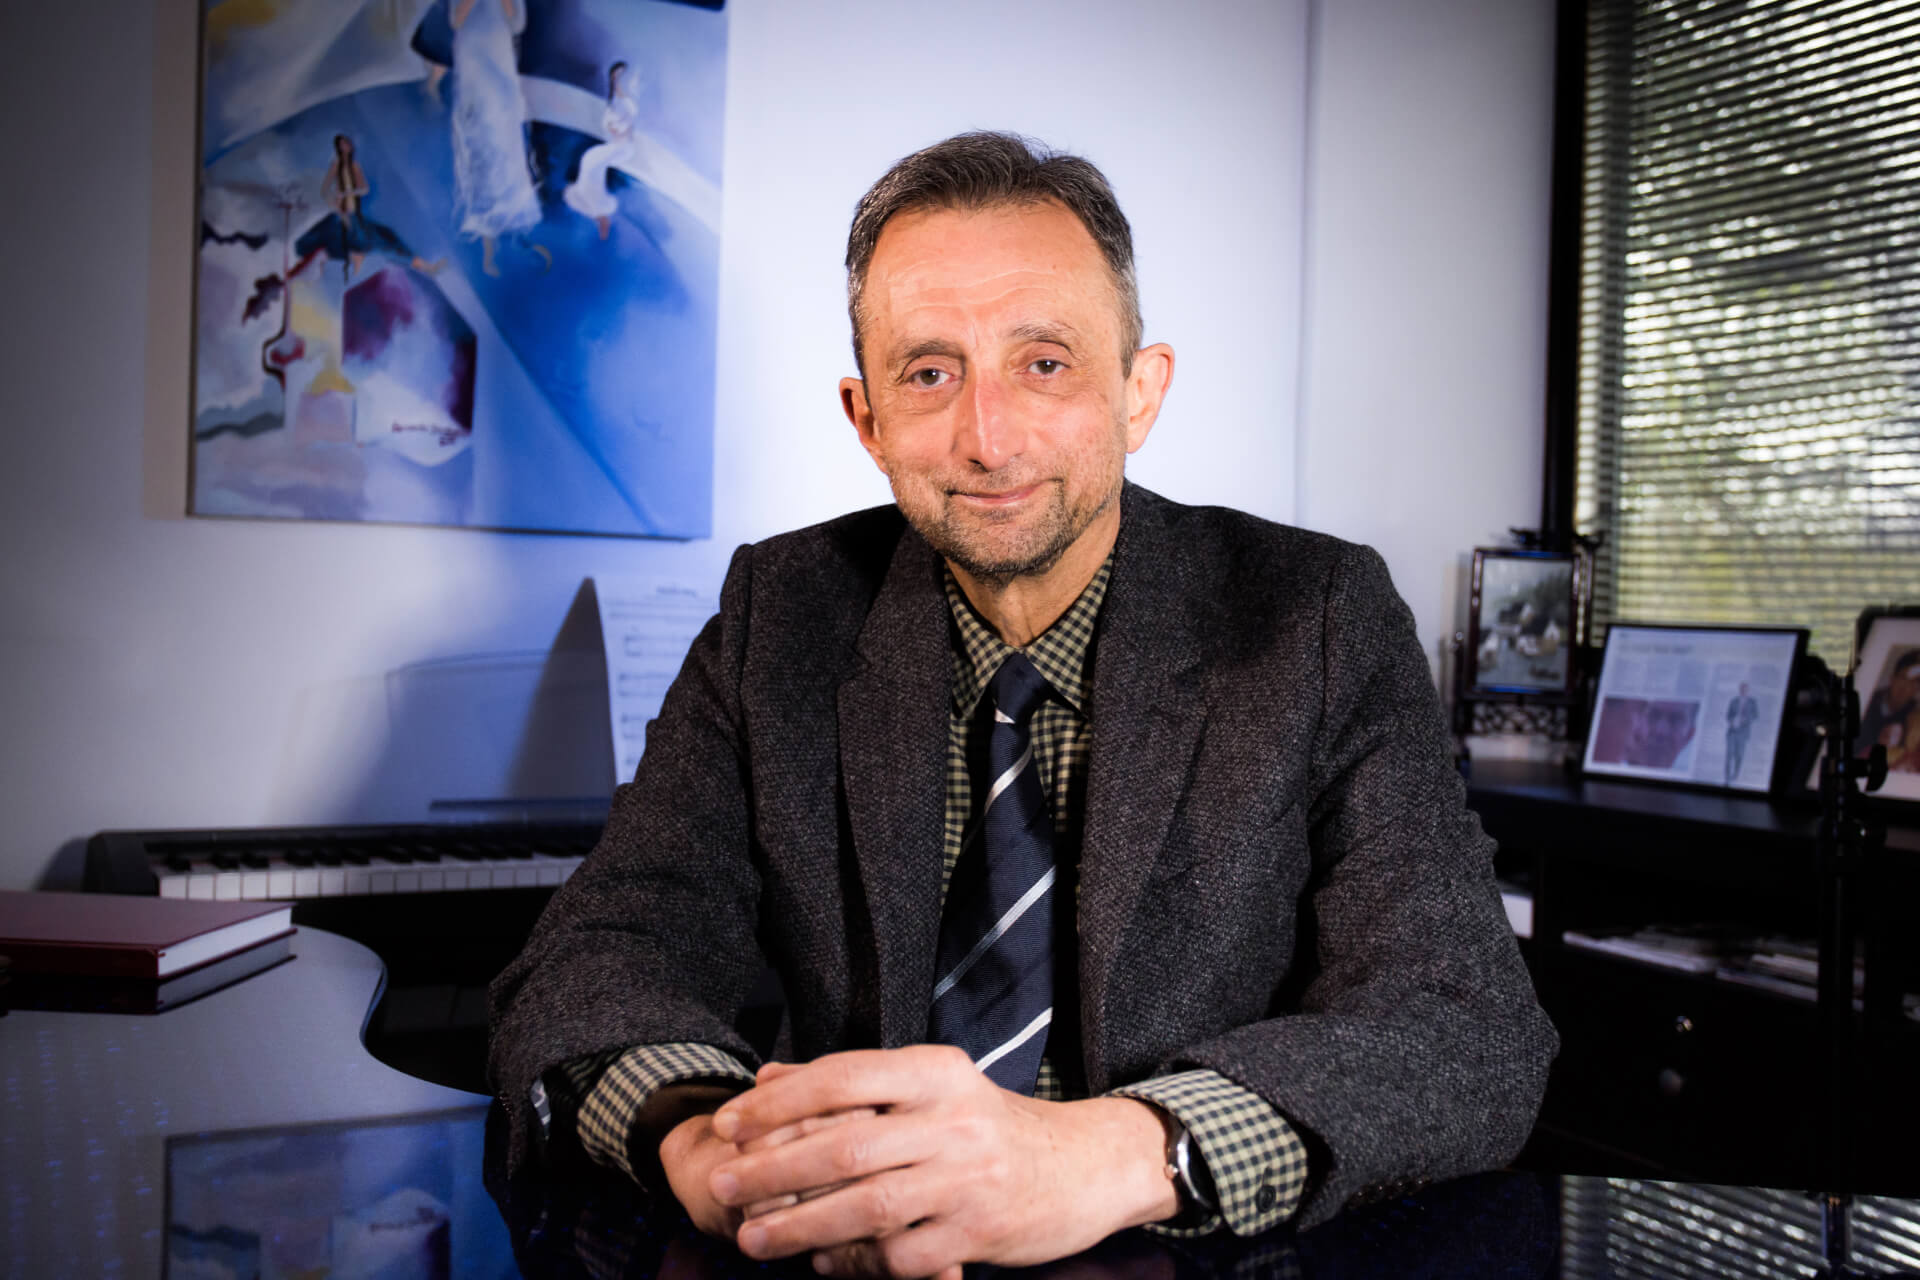 Dr Mike Asmead OBE